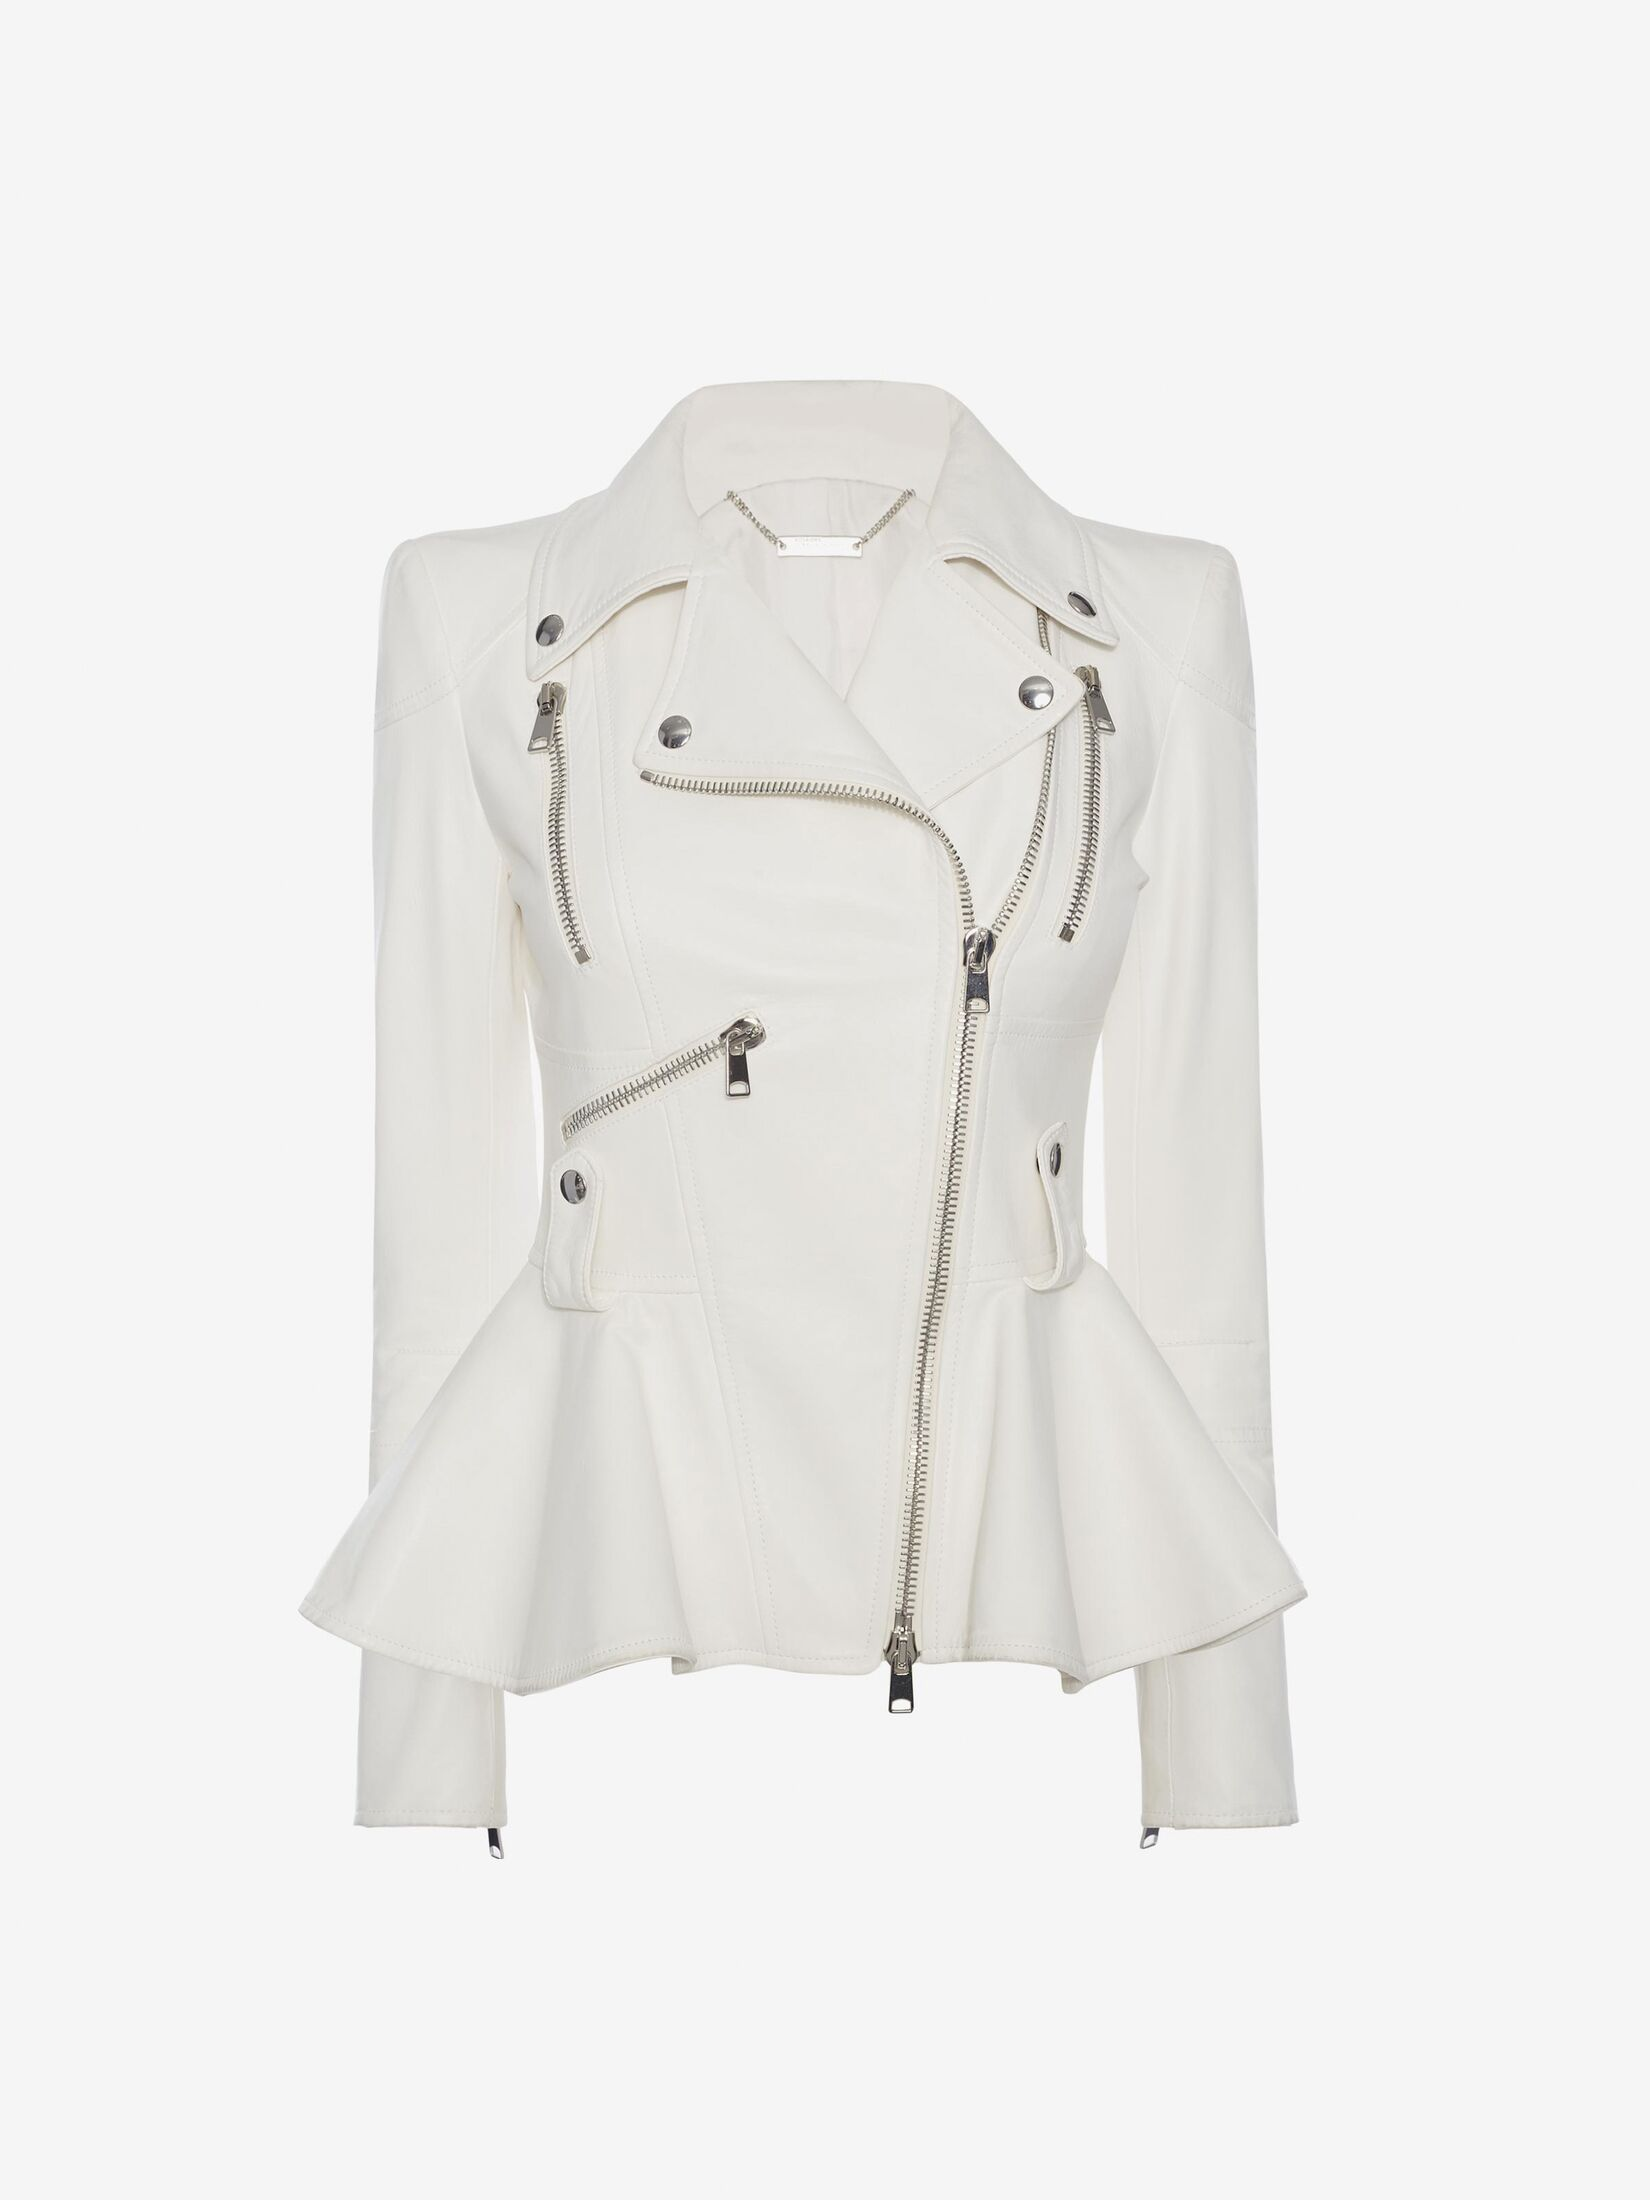 Alexander McQueen peplum biker jacket in ivory leather